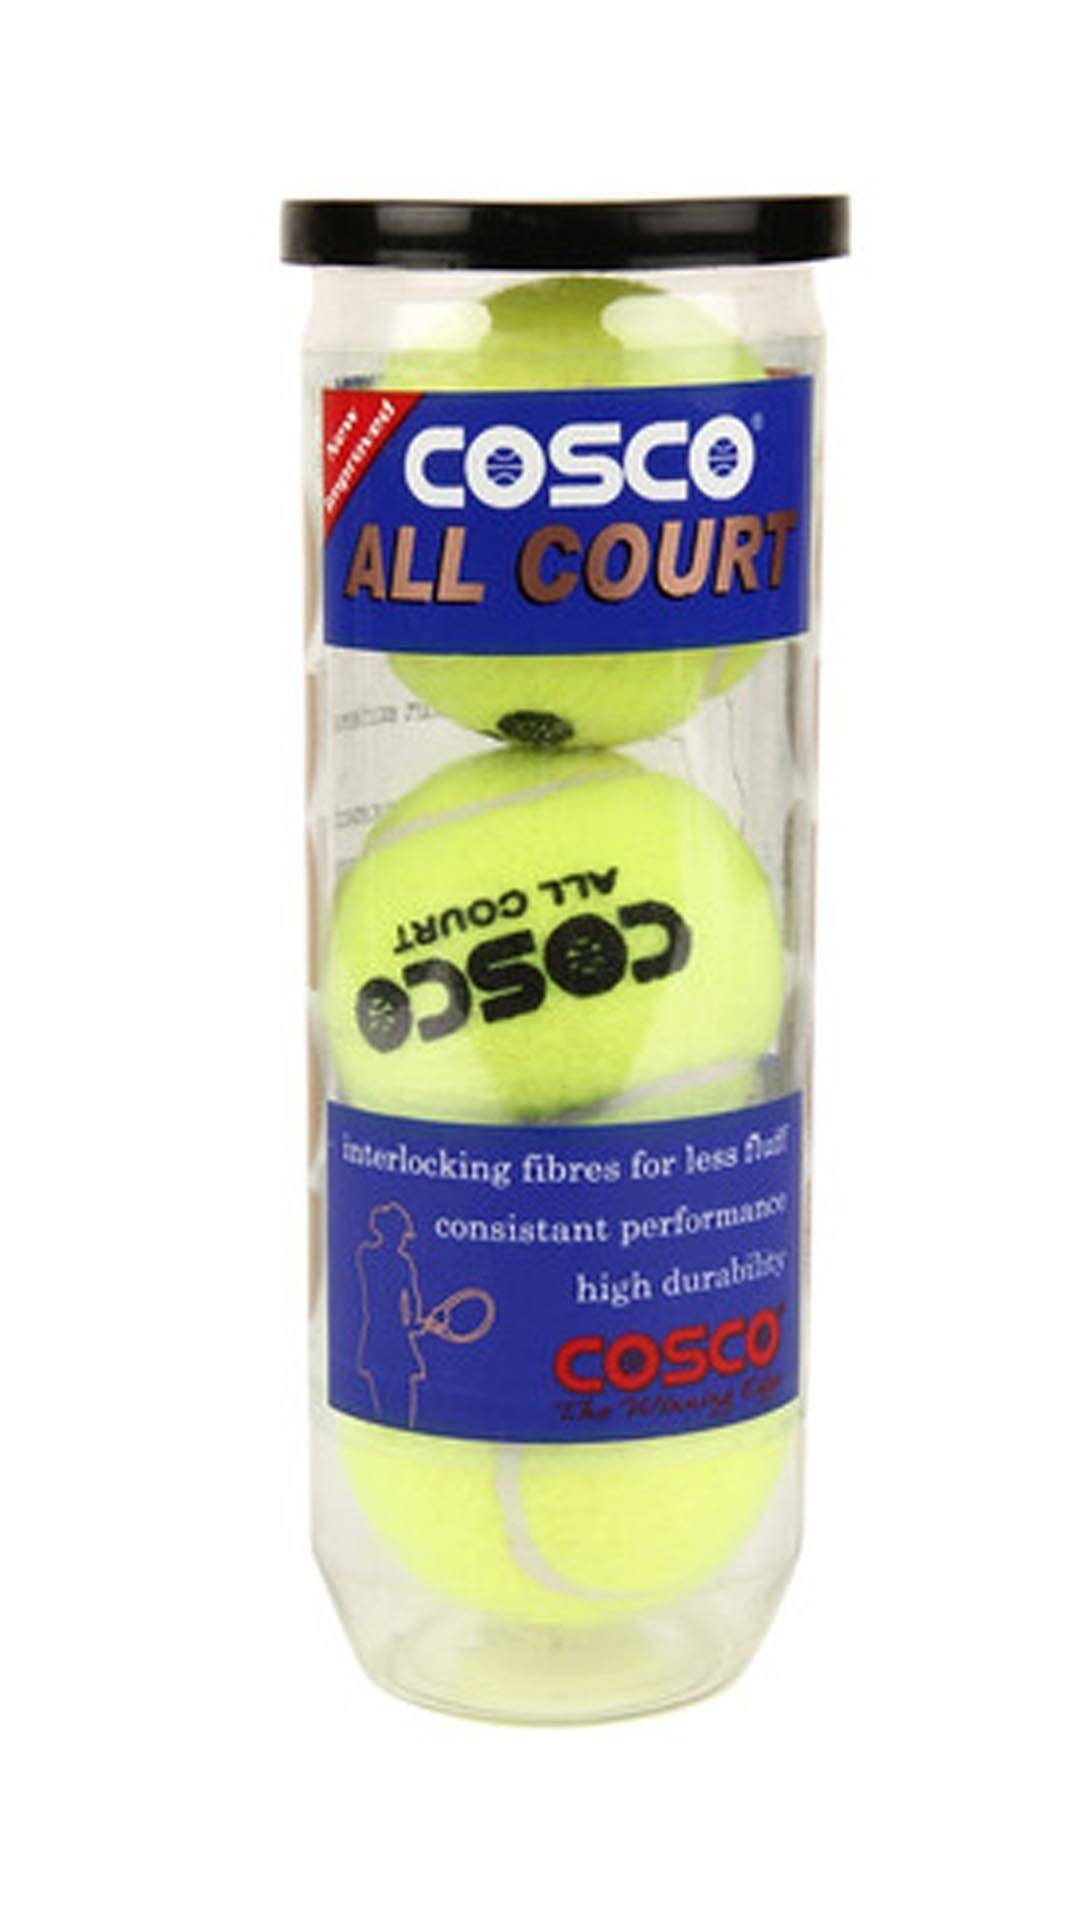 Cosco All Court Tennis Ball (Per can of 3 Balls)